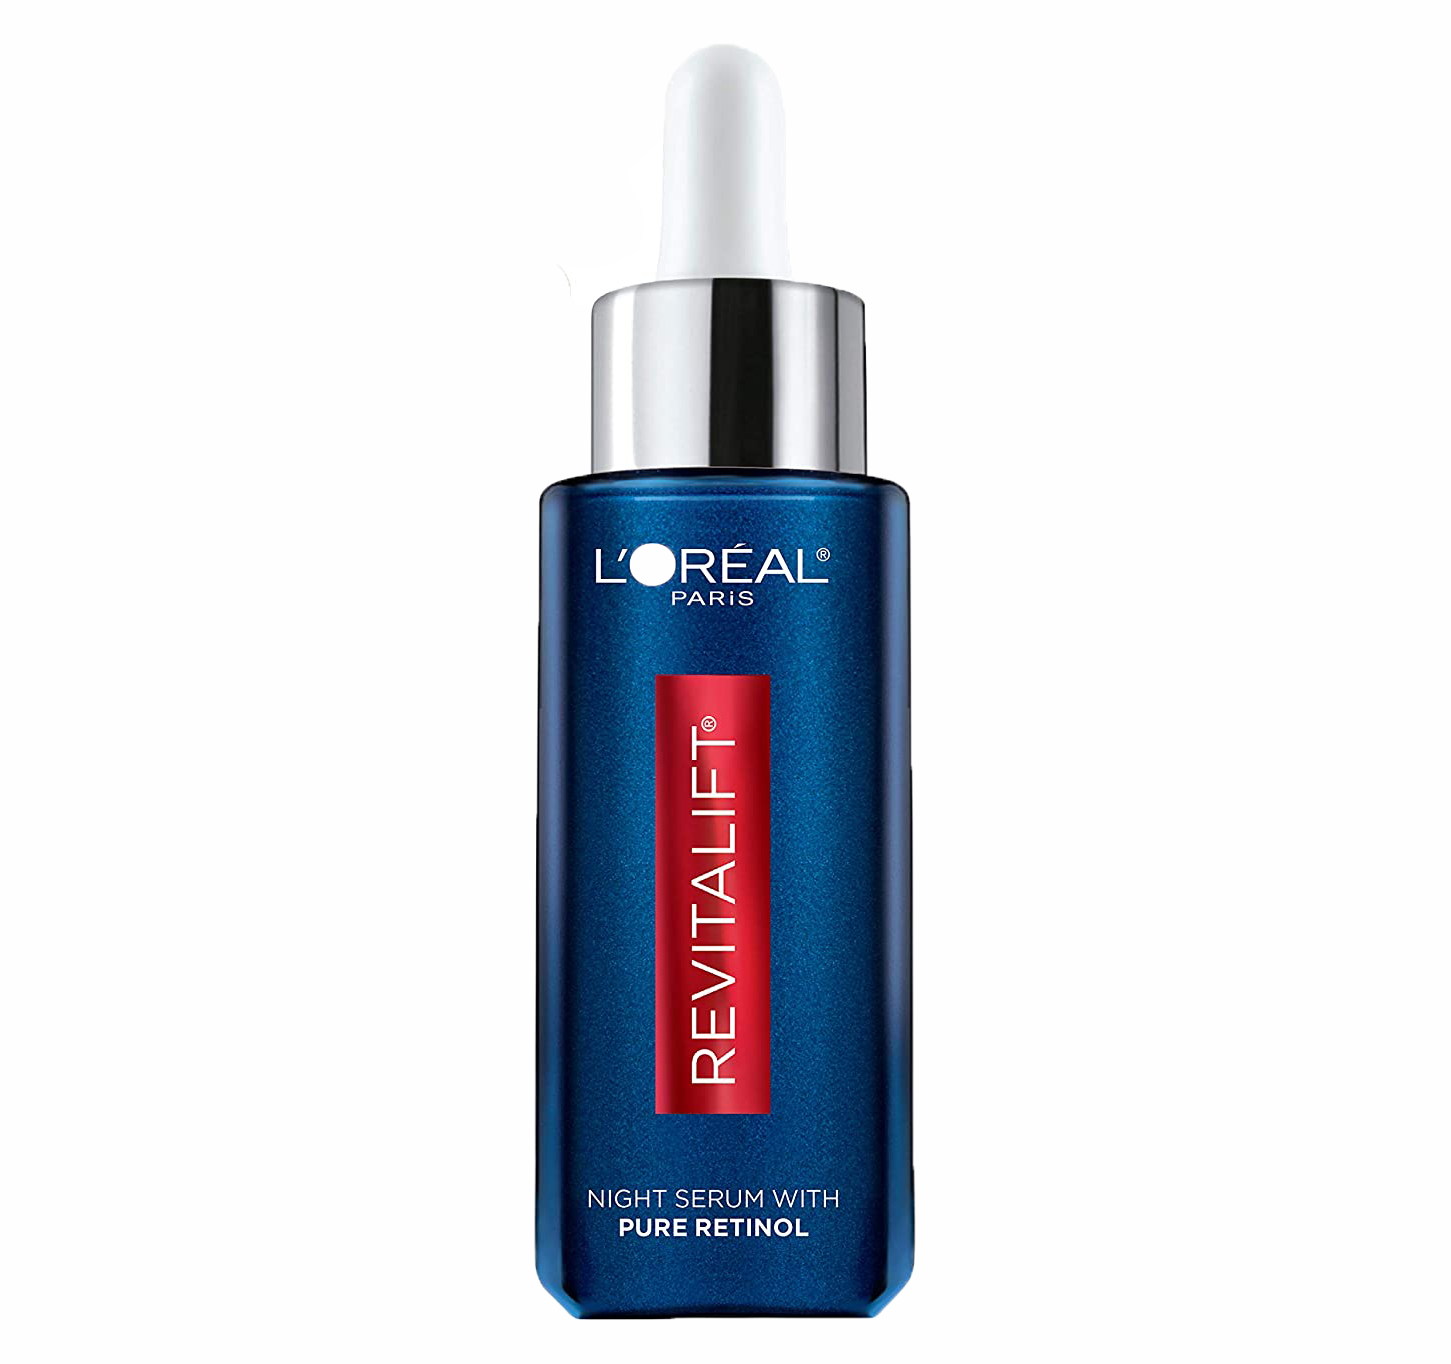 L'Oreal Paris Revitalift Derm Intensives Night Serum